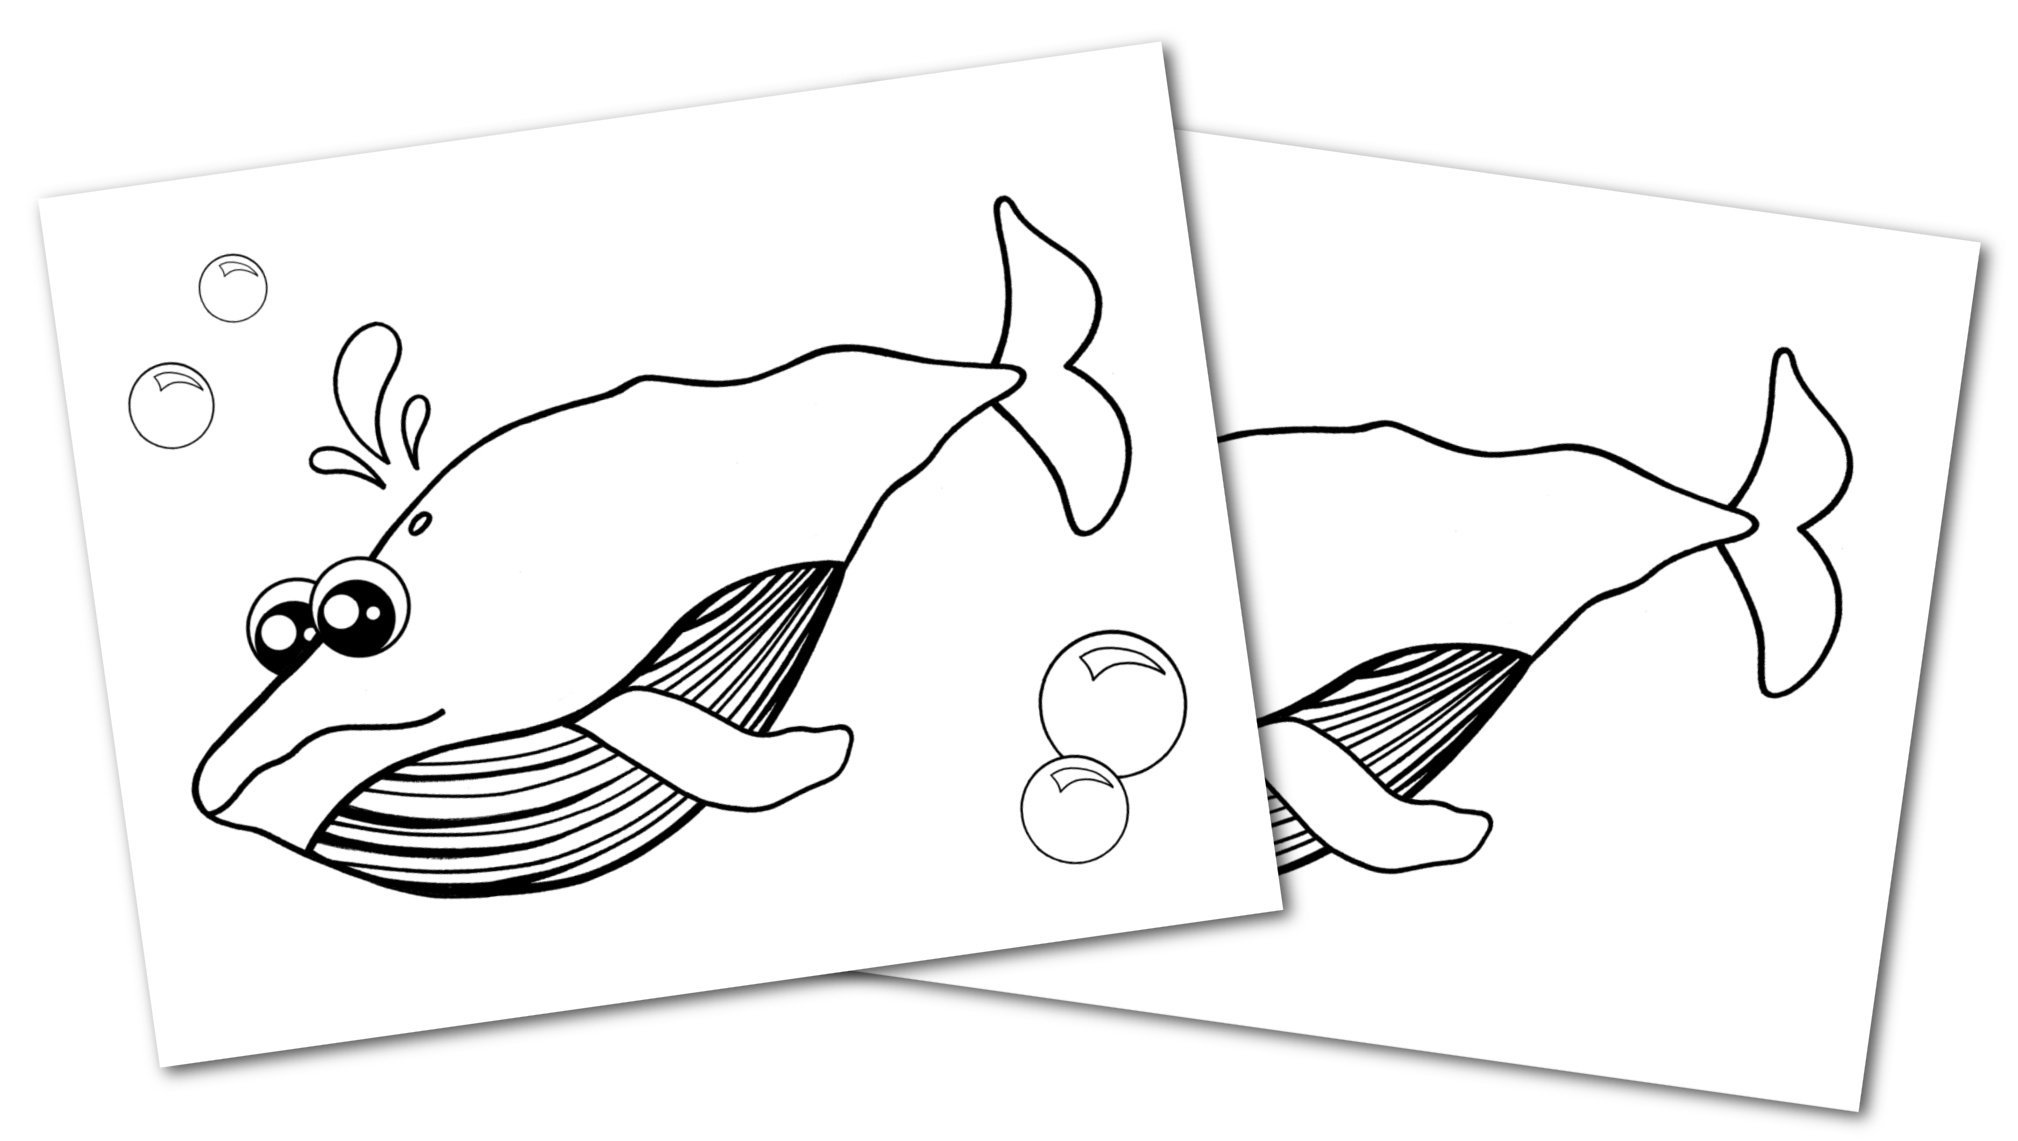 Free Printable Blue Whale Ocean Animal Convertkit for Toddlers, Kids and Preschoolers